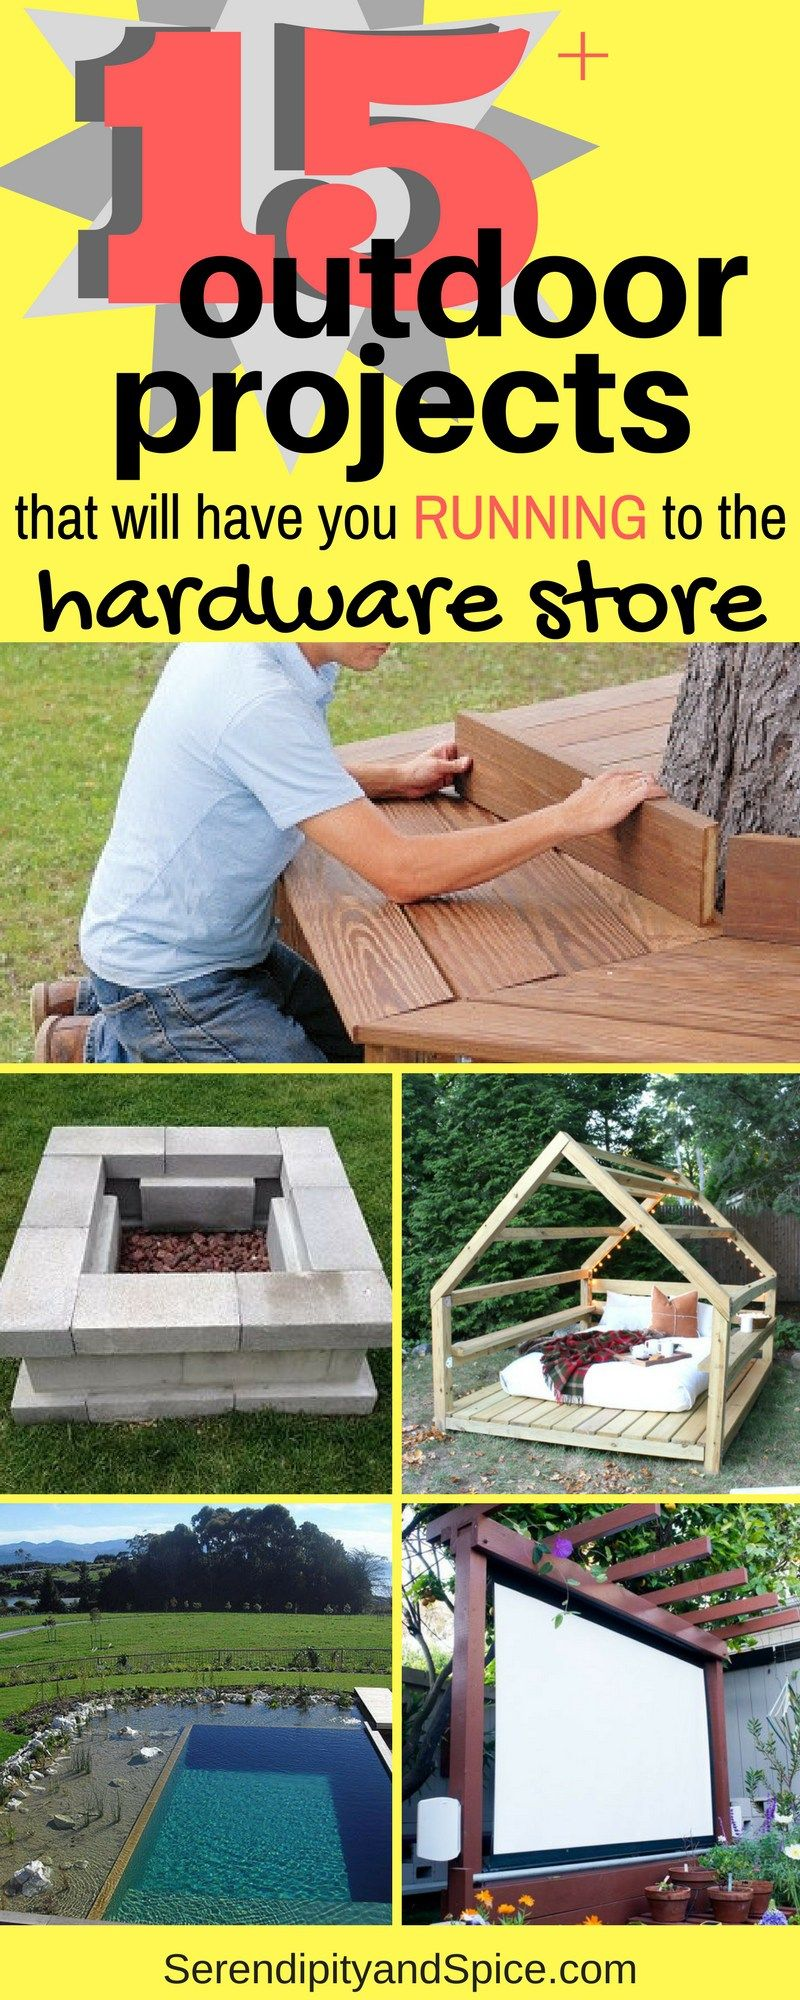 Diy outdoor projects to make your summer epic serendipity and diy outdoor projects that are amazing and will make your summer epic add these do solutioingenieria Images